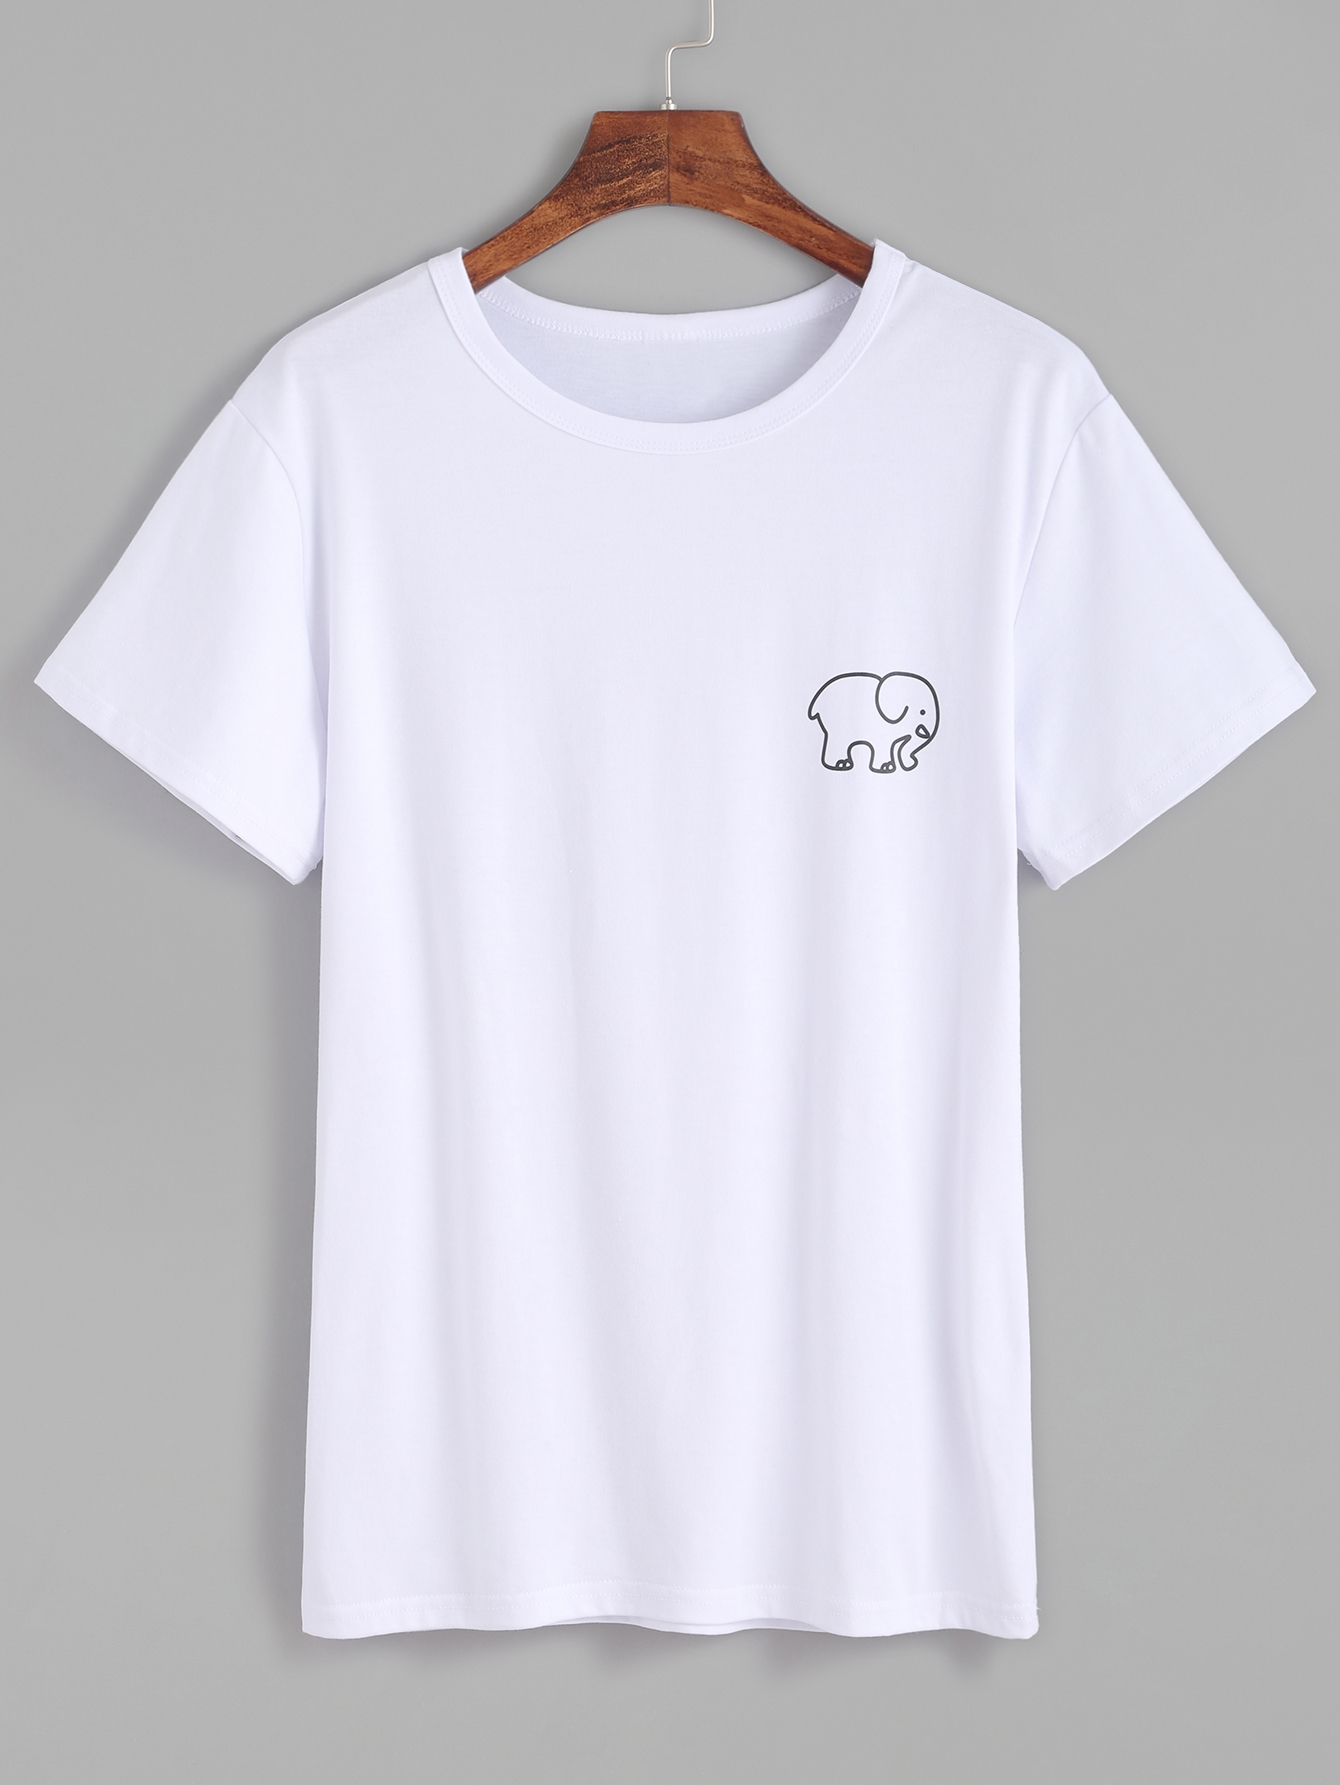 5f78a53367a5e0 Hot Cotton Blends cunning Short arm pronounce Neck Animal black and white  artifact HA no continuance time of year T Shirts.